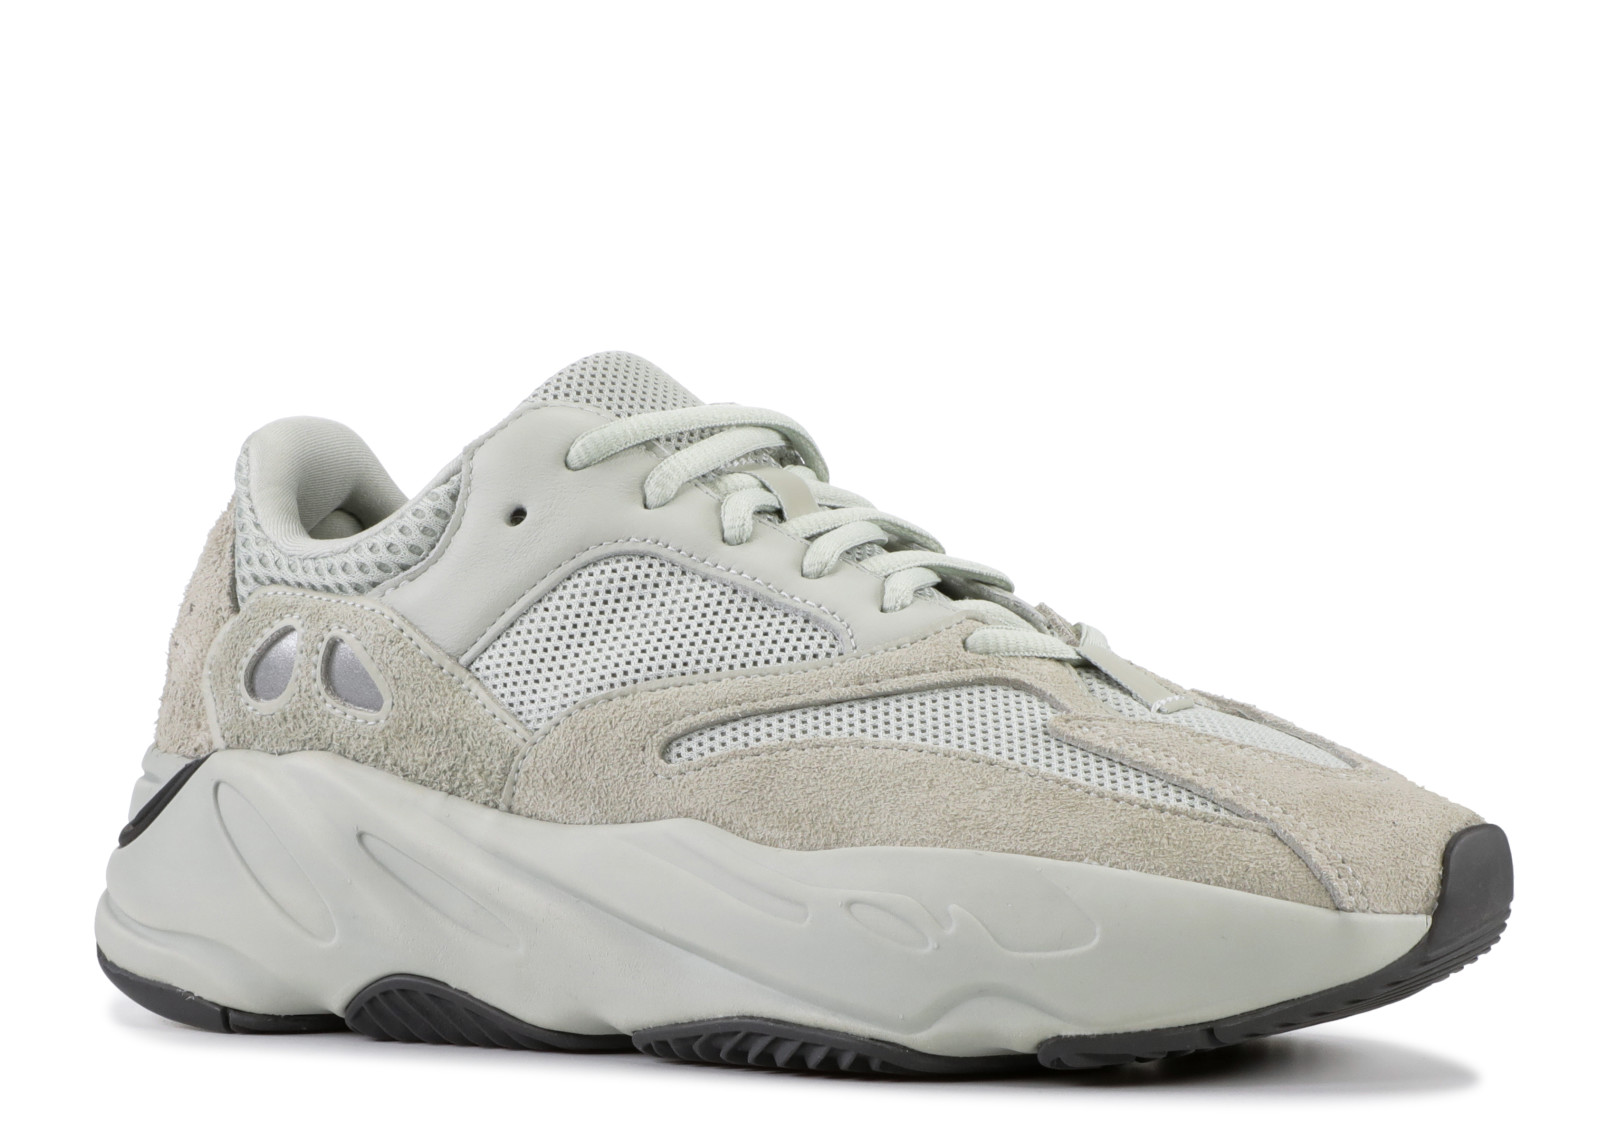 36f4e3fd8 Yeezy Boost 700 Salt – Alphasneak